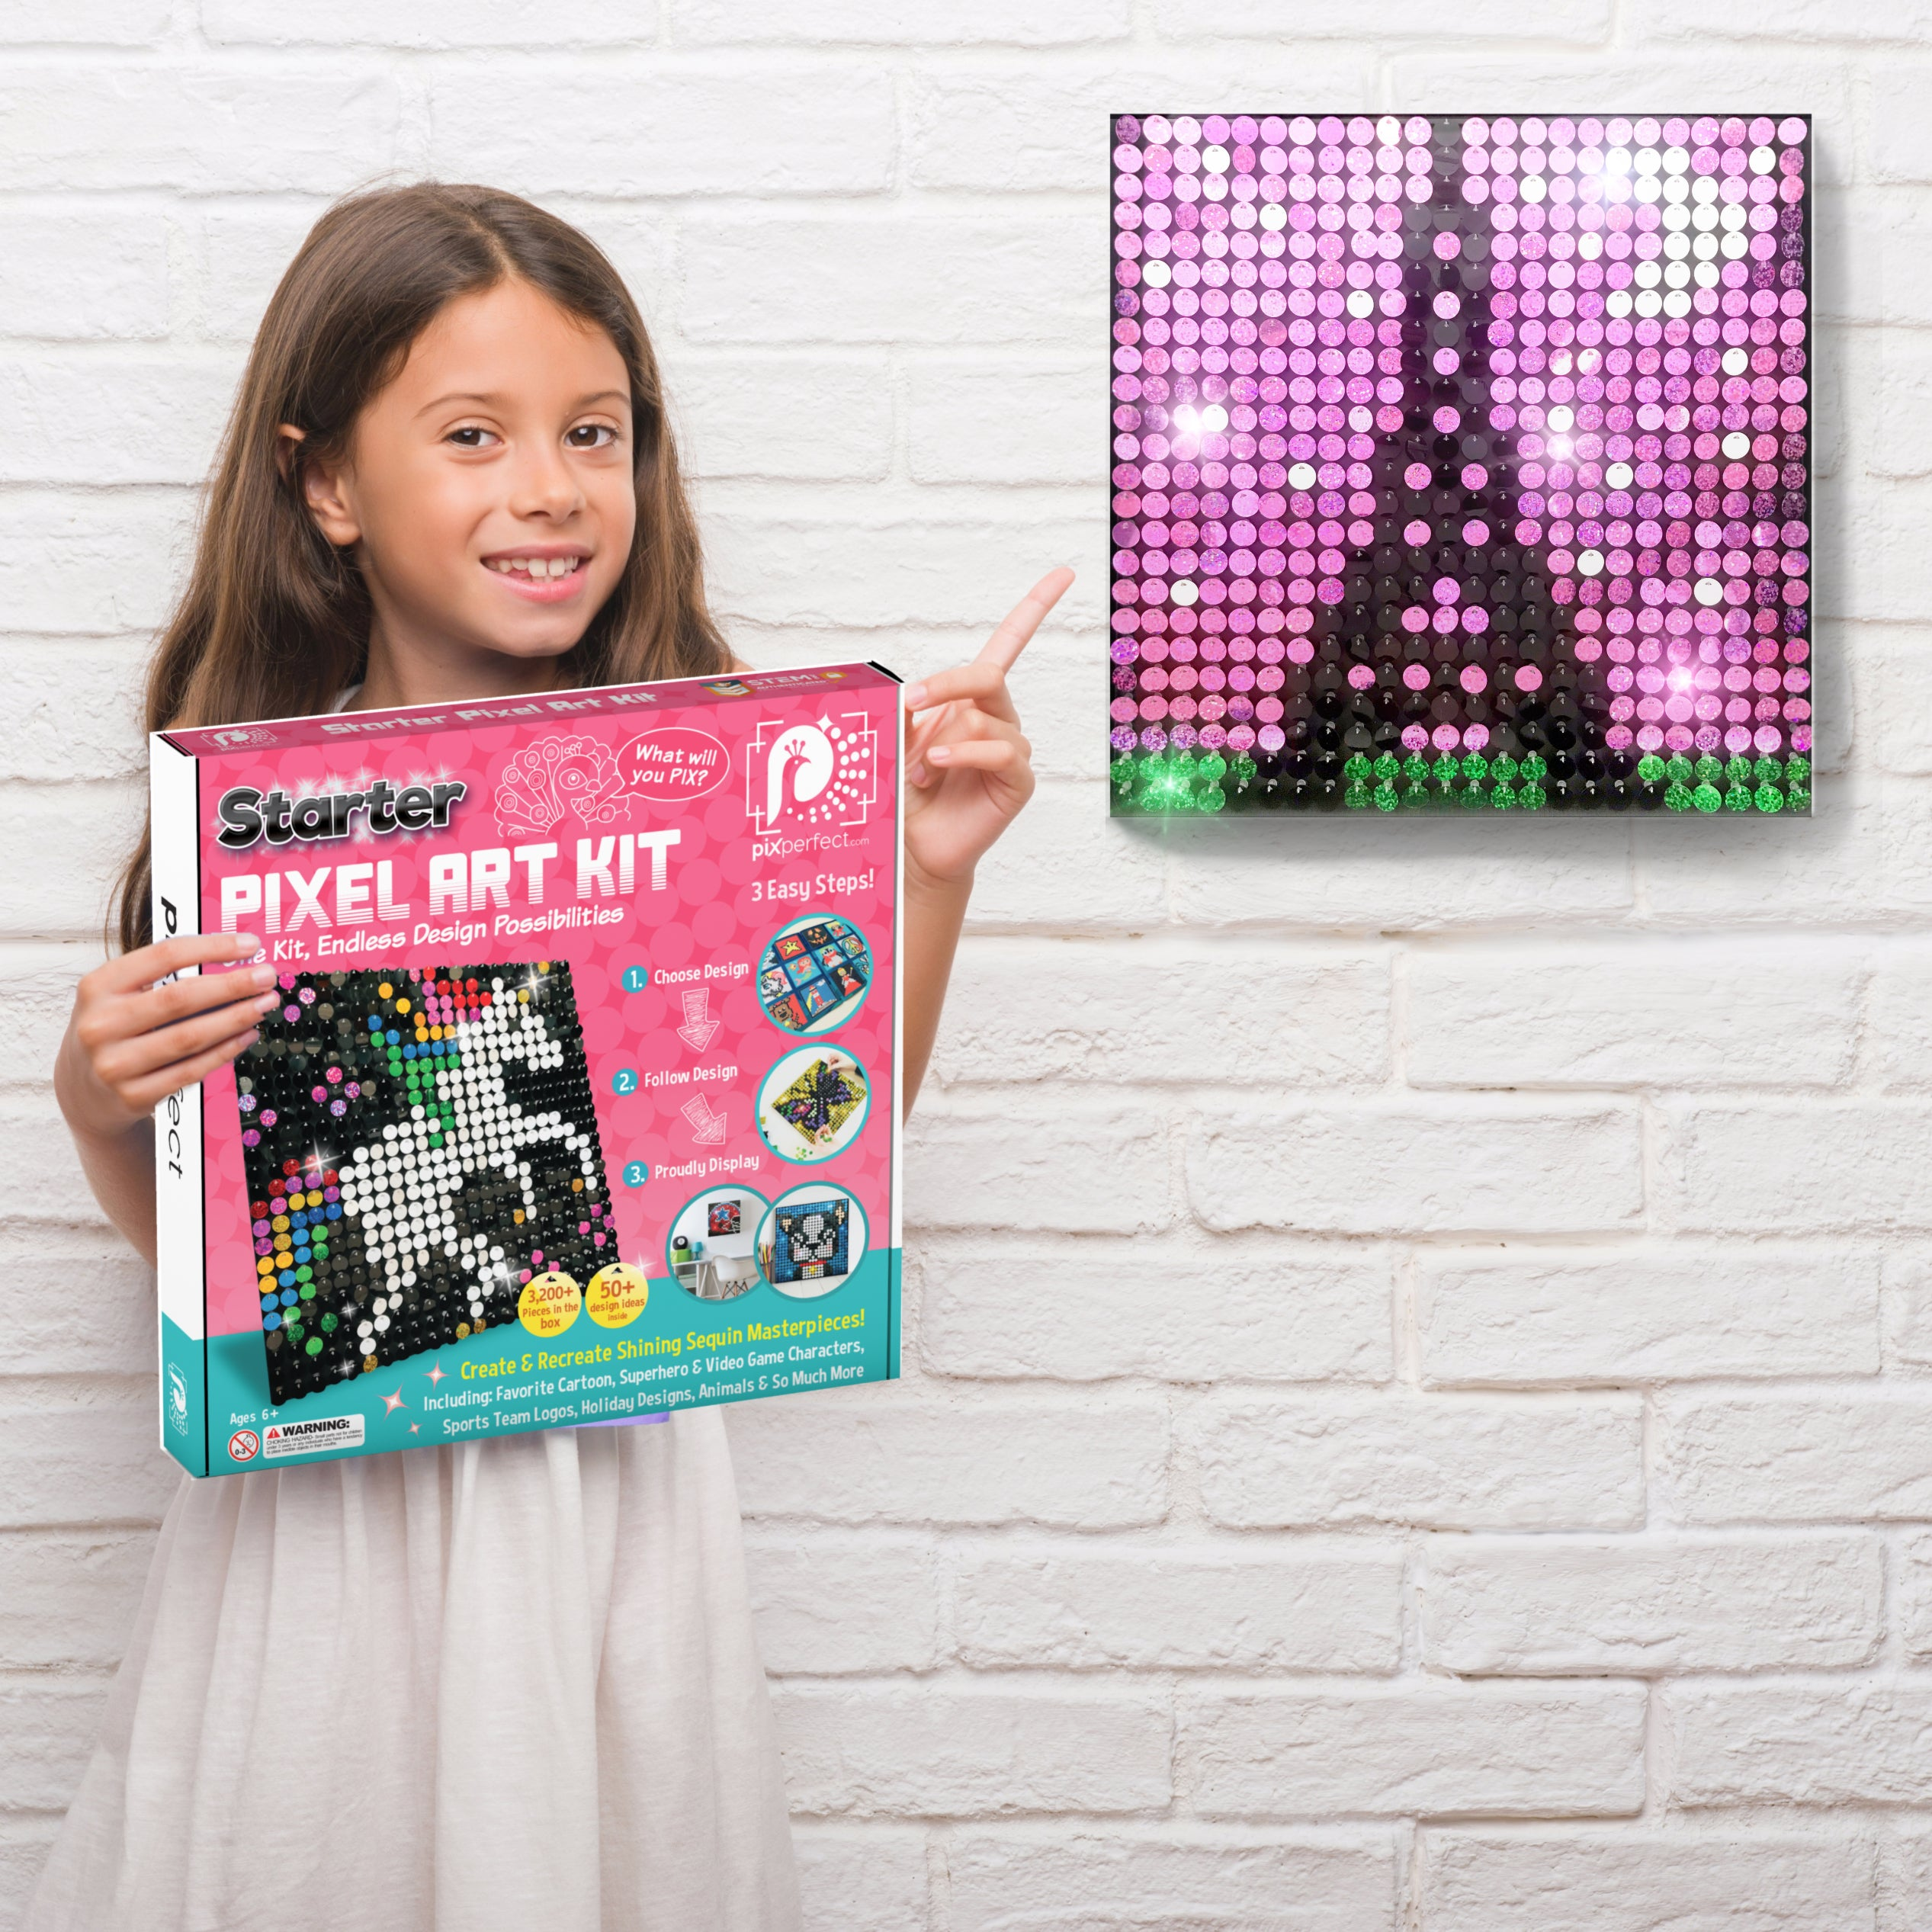 Pix Perfect Starter Pixel Art Kit sequin art craft kit girls teens